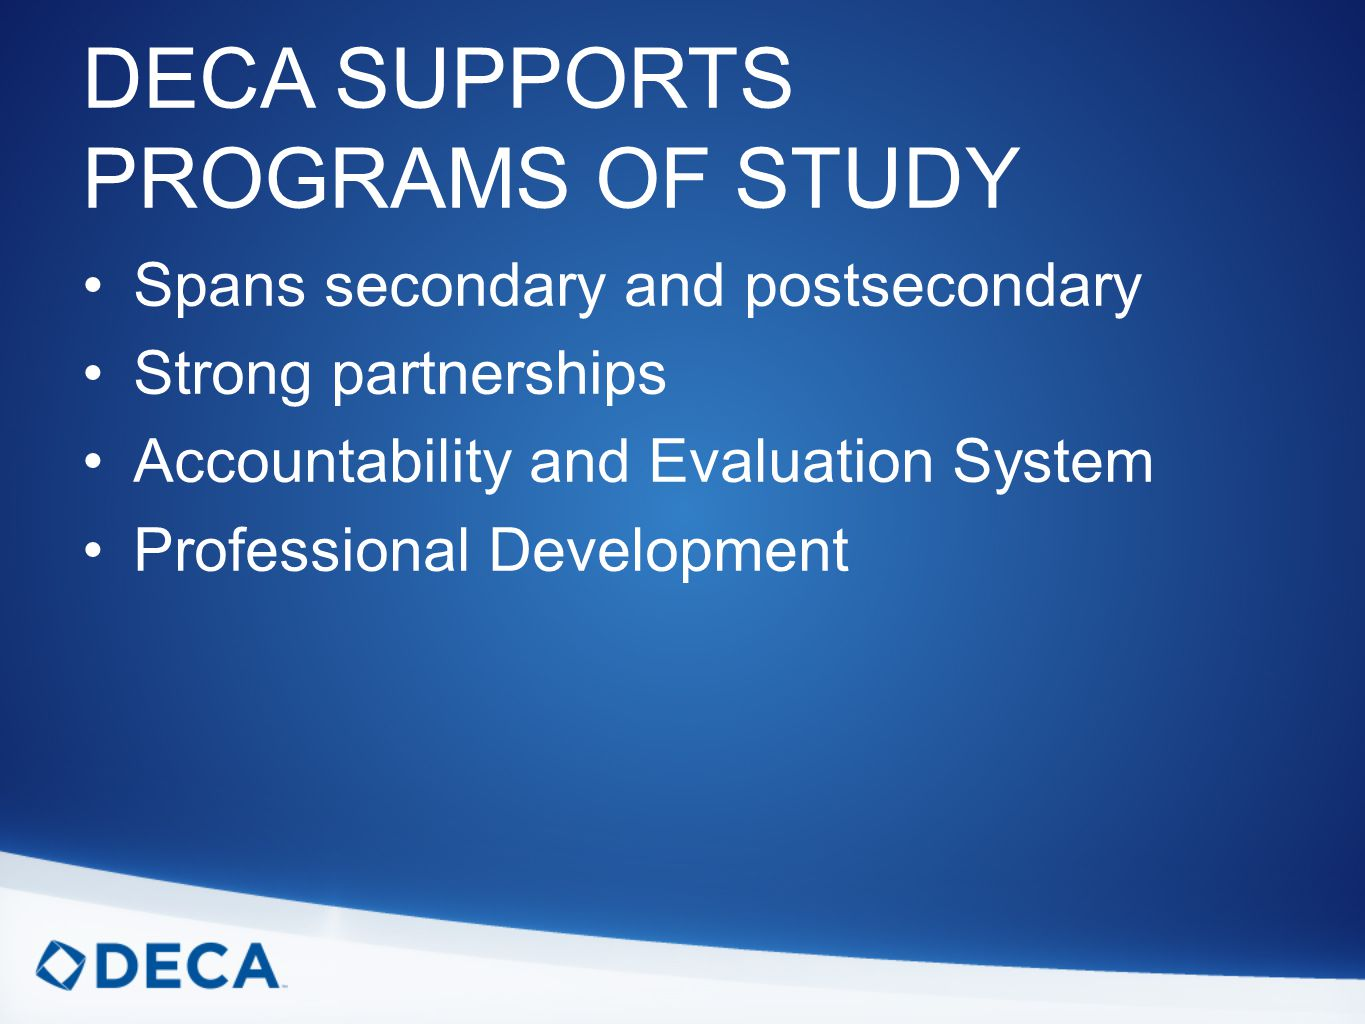 DECA SUPPORTS PROGRAMS OF STUDY Spans secondary and postsecondary Strong partnerships Accountability and Evaluation System Professional Development